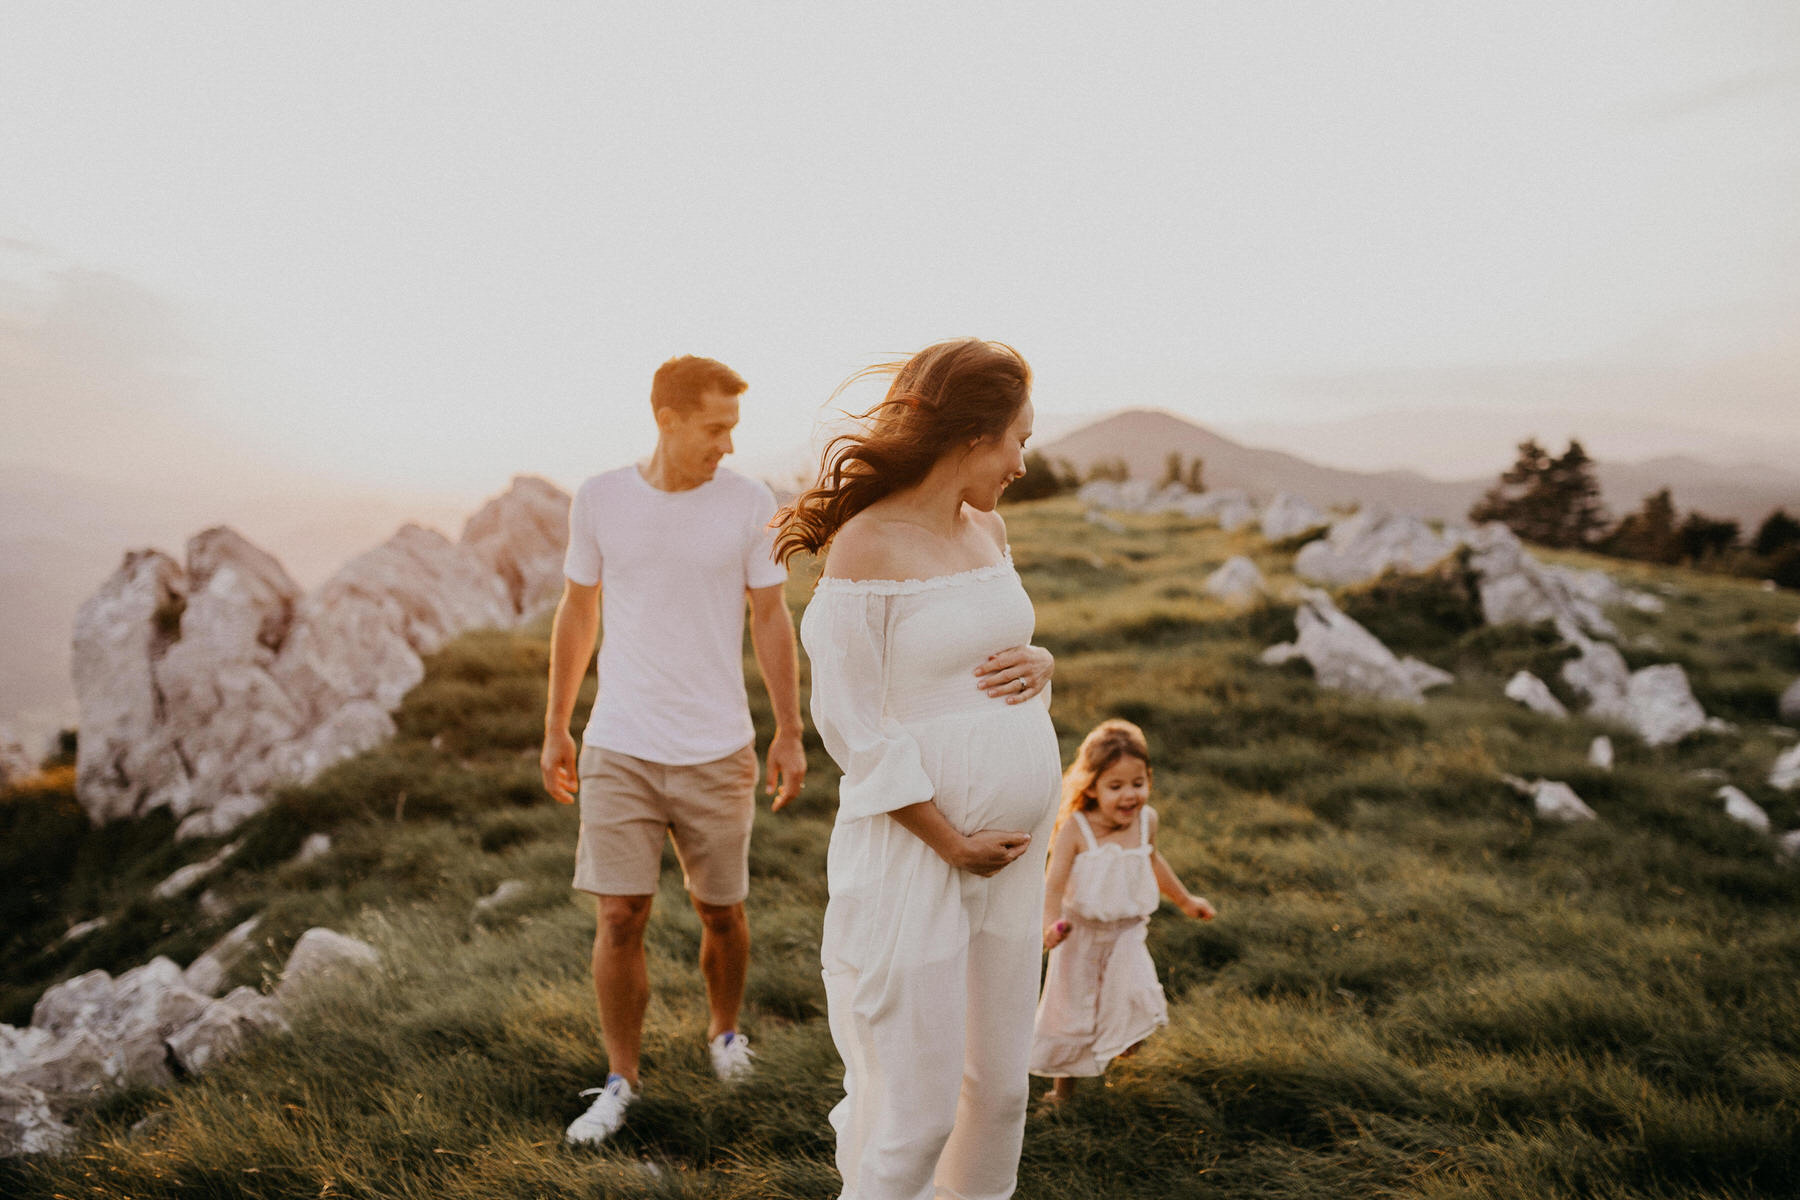 Pregnancy Photographer Zurich Switzerland Family Photography Nature Mountain Session Modern Photo session Familienfotograf Ana Kete